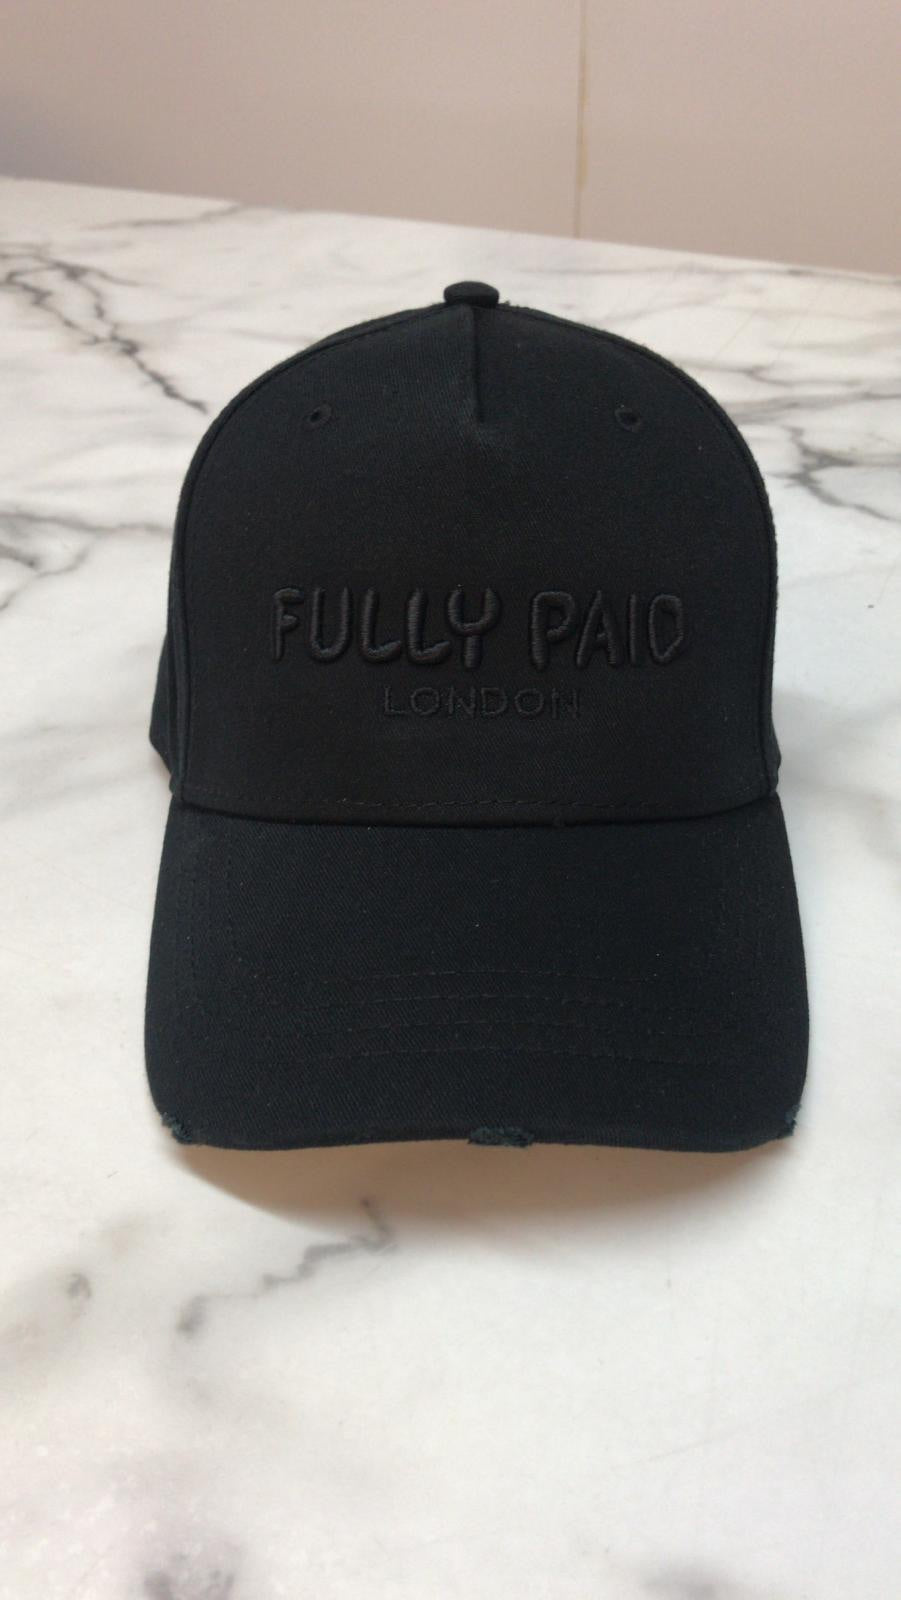 Fullypaid black out london cap